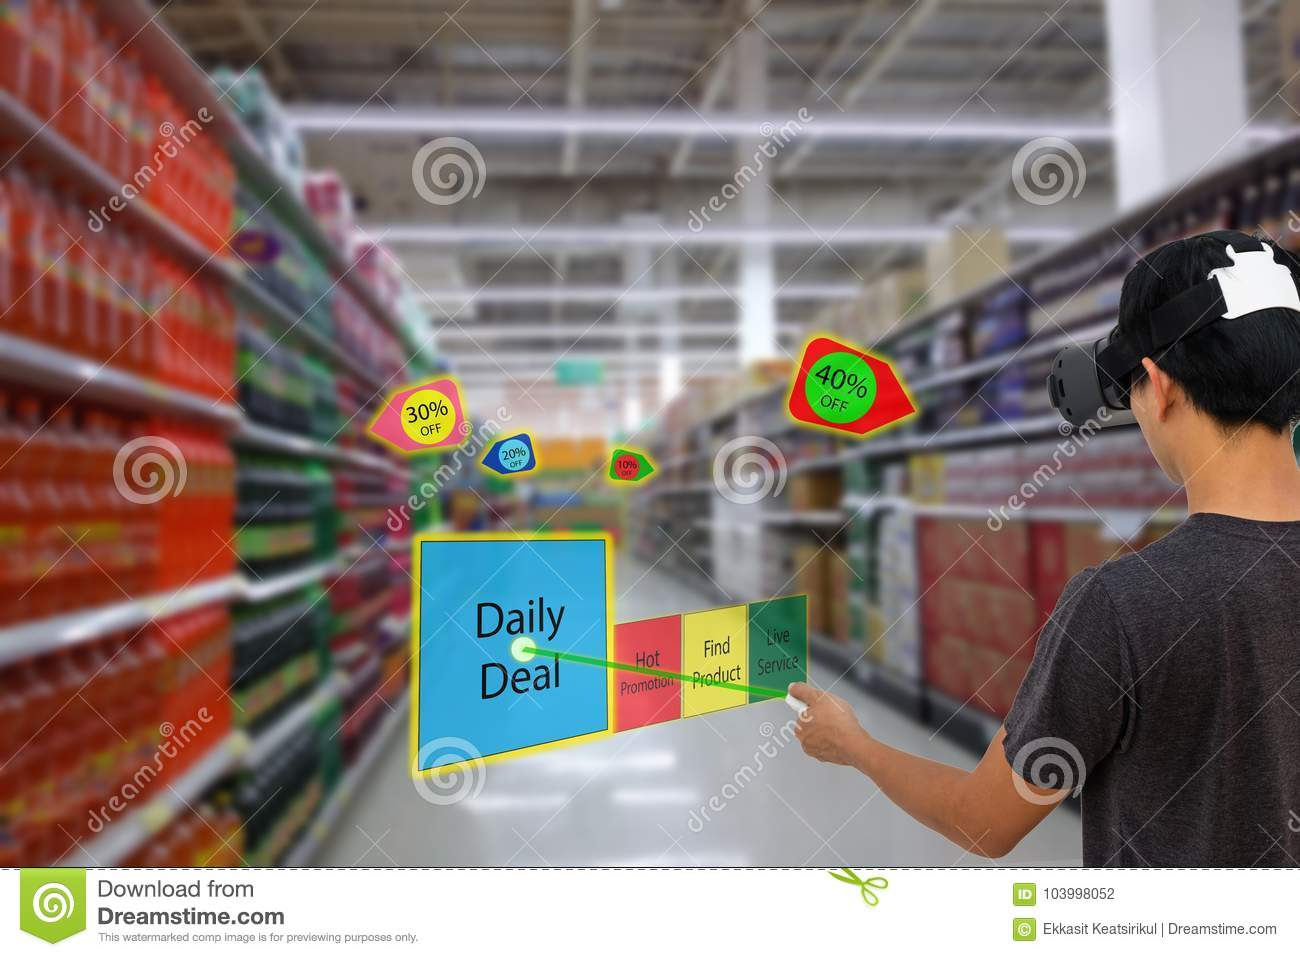 Smart retail with augmented and virtual reality technology concept, Customer use ar and vr glasses to search a daily deal